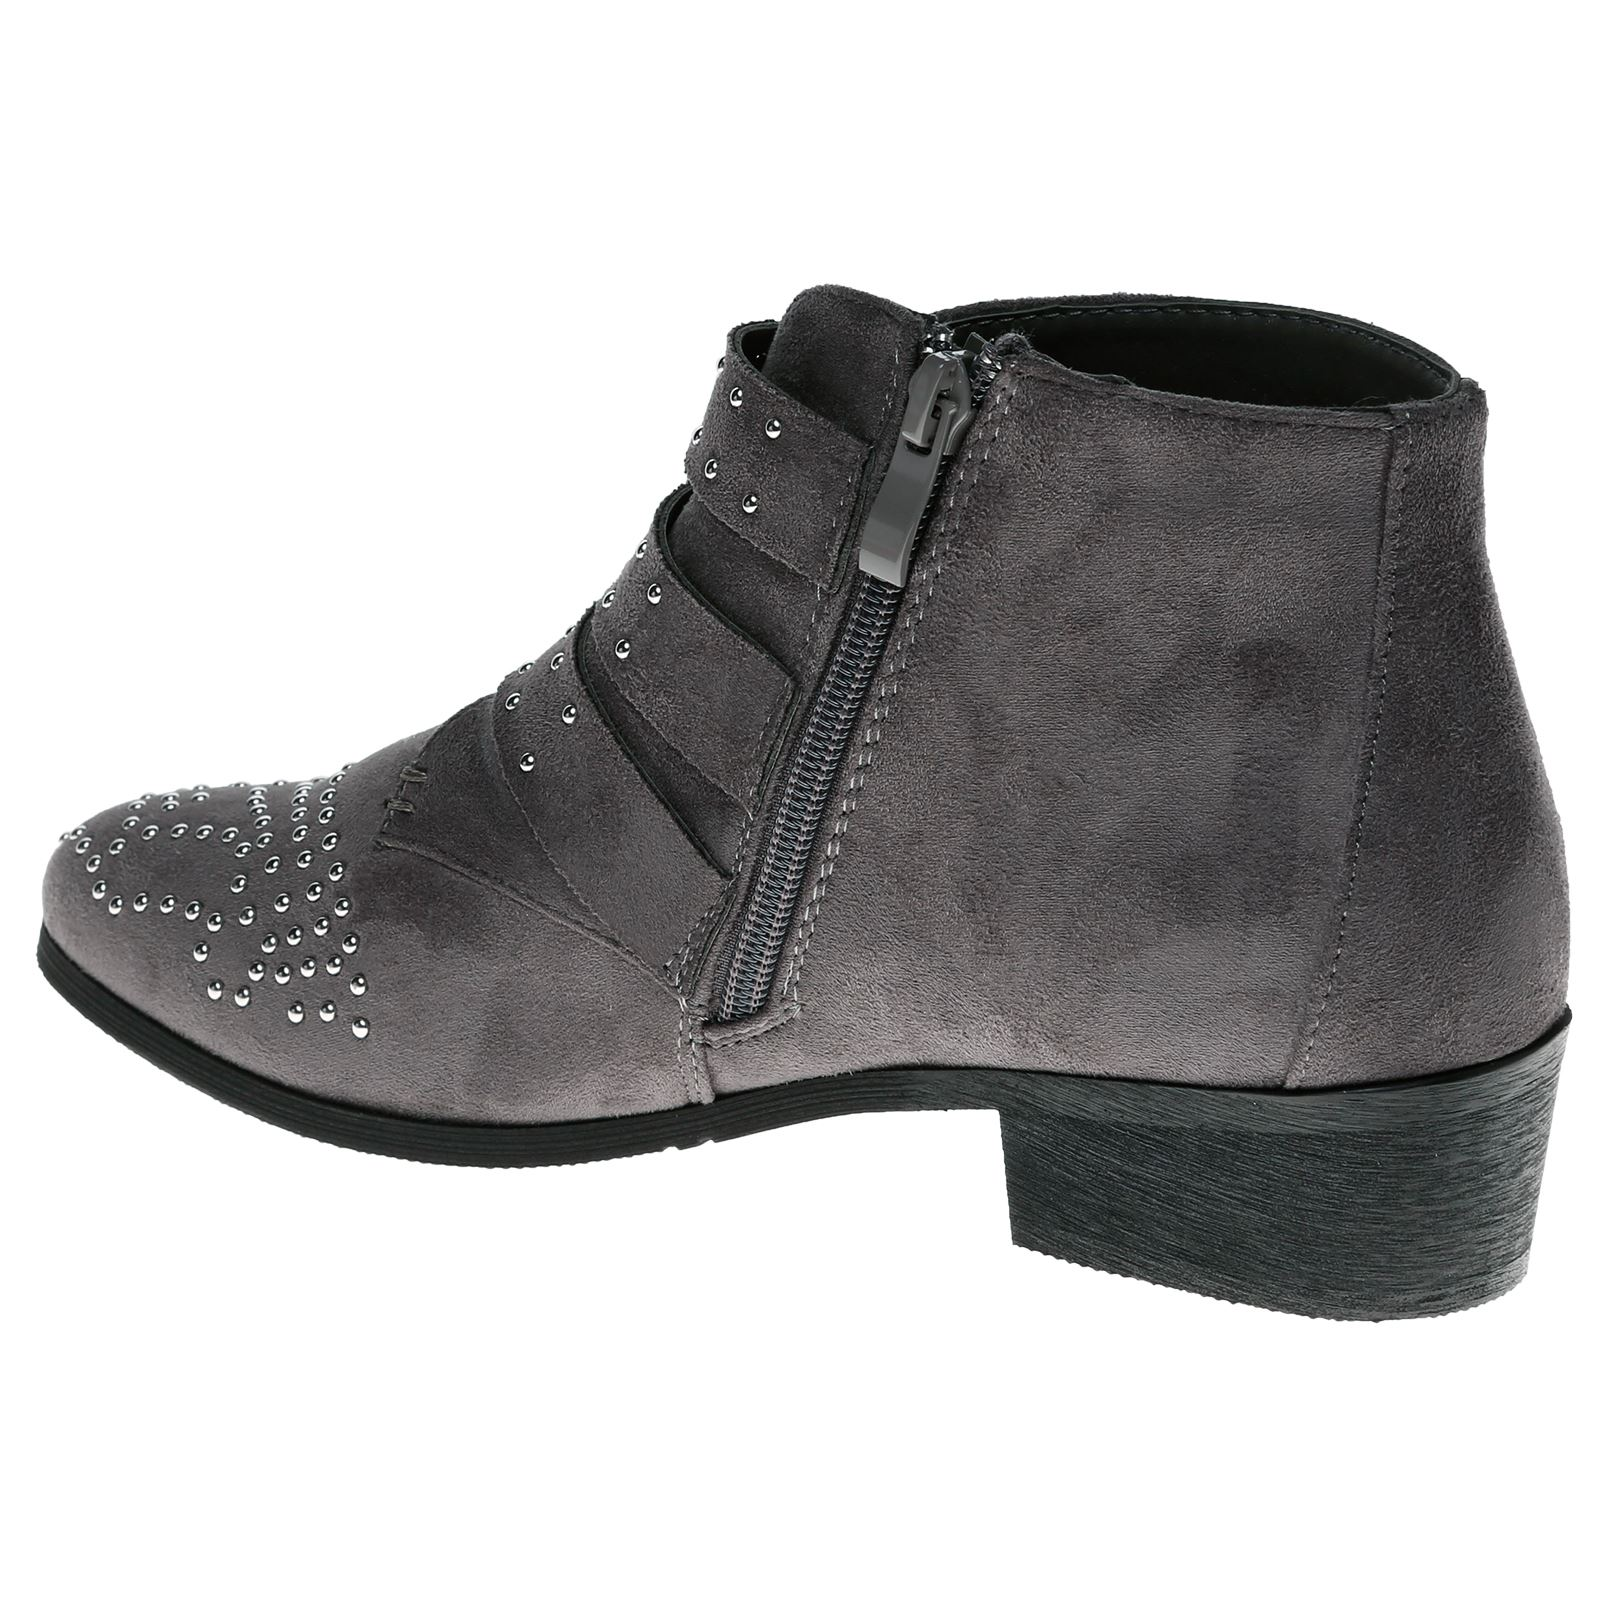 Liv-Womens-Flats-Low-Heels-Buckle-Strappy-Biker-Ankle-Boots-Ladies-Shoes-Studded thumbnail 21